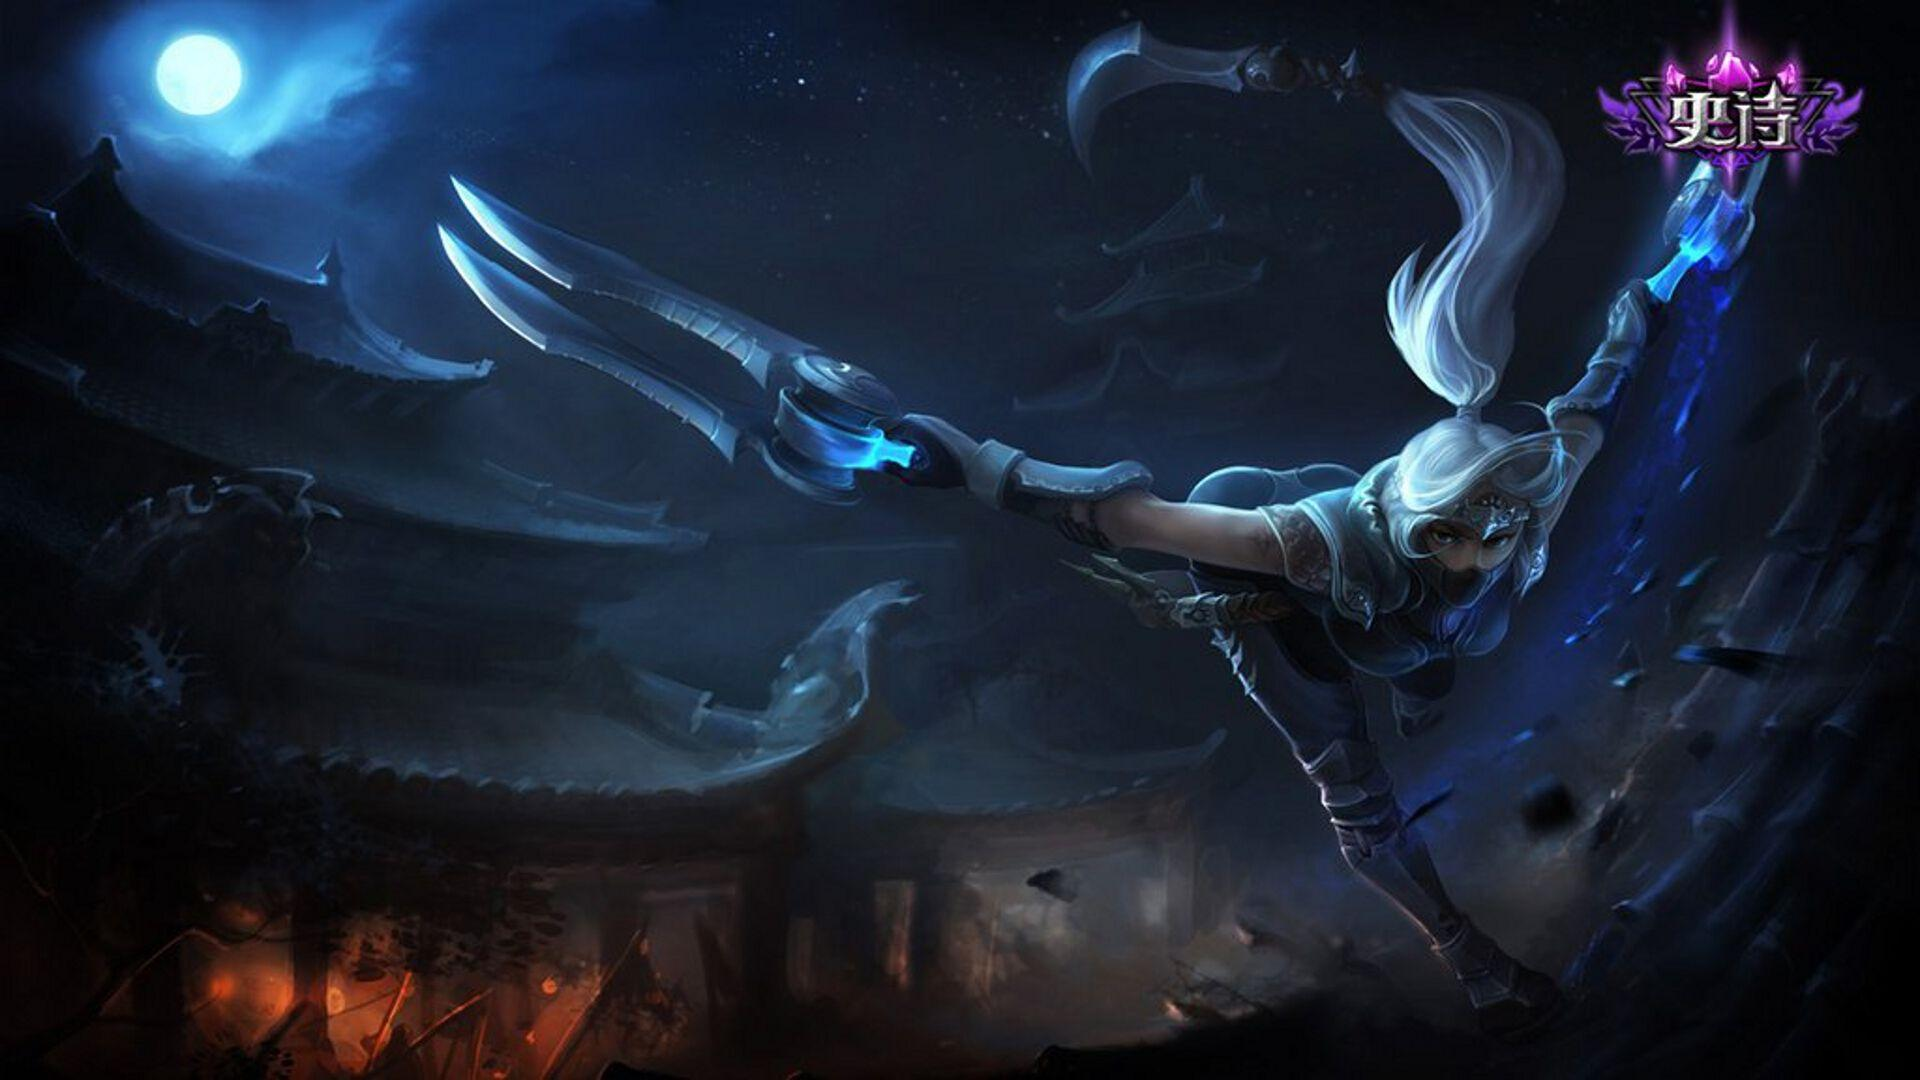 Wallpapers Akali Wiz Khalifa Taylor Gang 1920x1080 | #359503 #akali